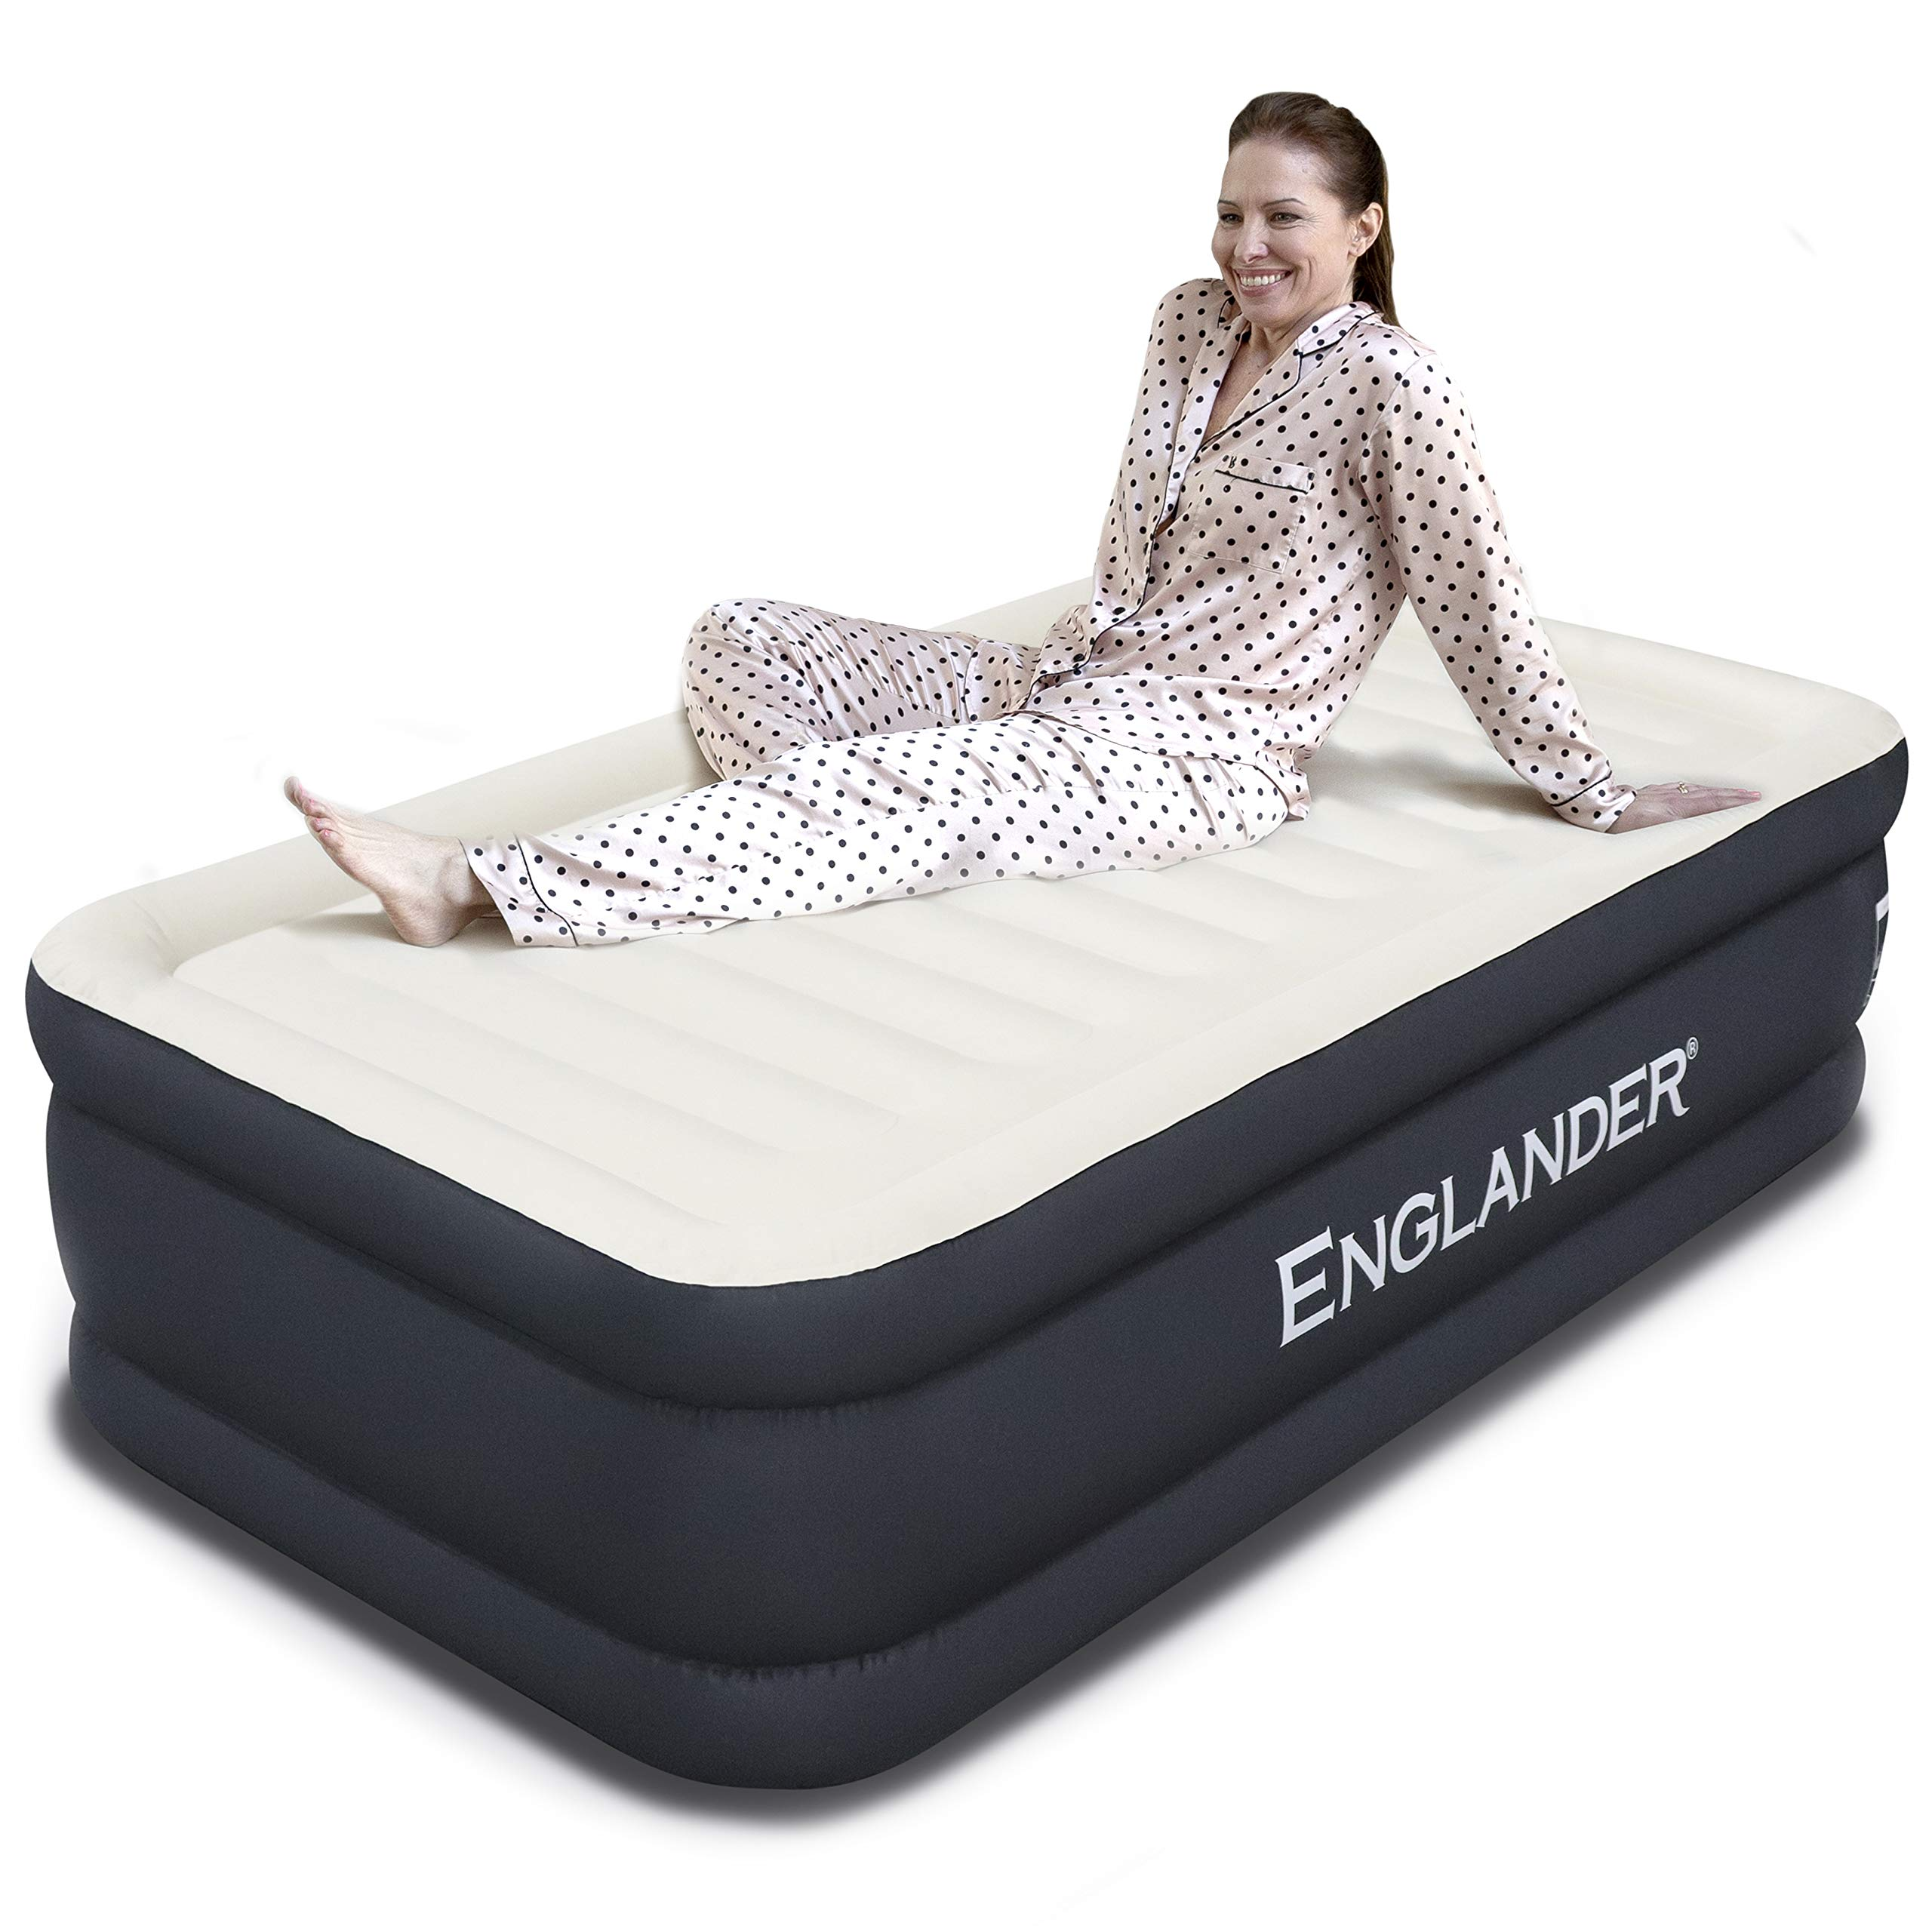 Englander First Ever Microfiber AIR Mattress Twin Size, Luxury Airbed with Built in Pump, Highest End Blow Up Bed, Inflatable Air Mattresses for Guests Home Travel 5-Year Warranty (Black) by Englander